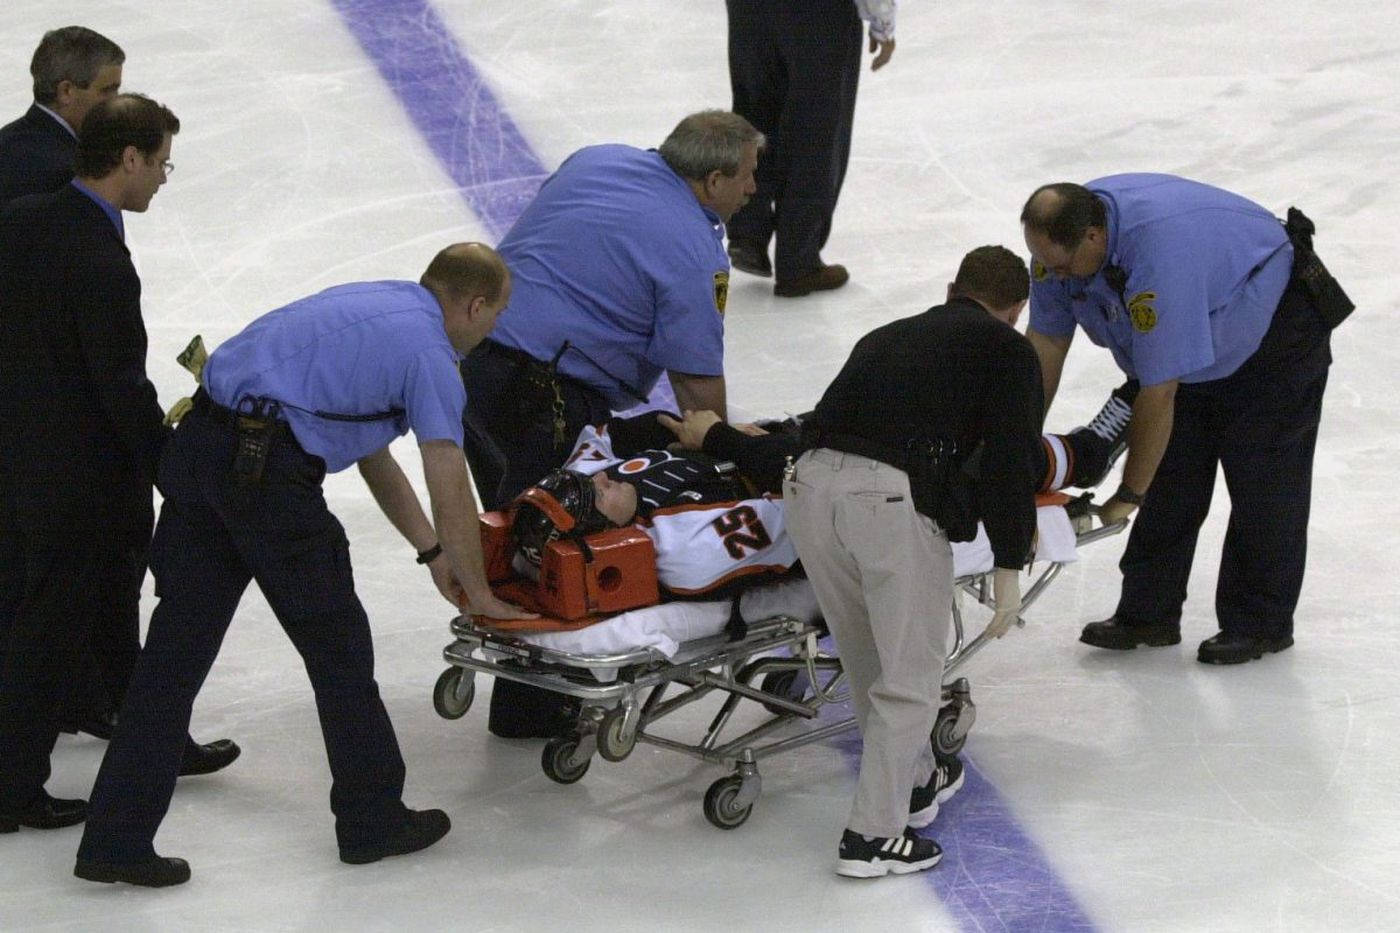 Is the NHL doing enough to prevent concussions? Eric Lindros, others don't think so